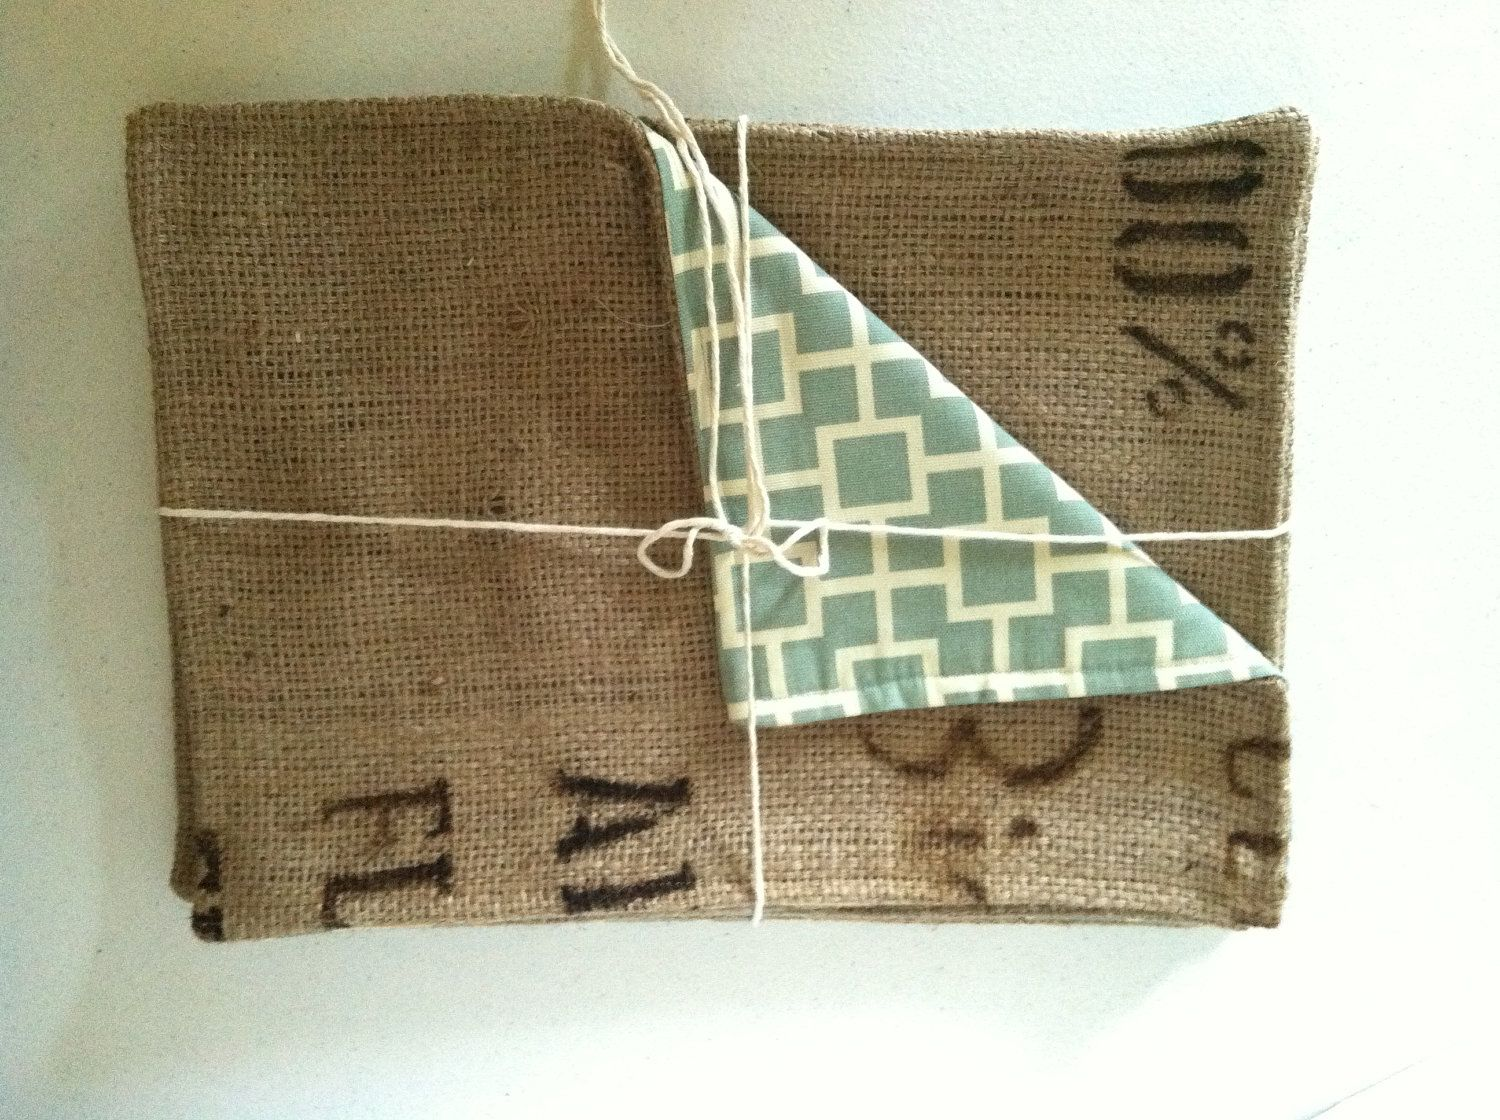 Recycled rice bag purse - Farmhouse Placemats Recycled Burlap Coffee Bag Set Of 4 Black Print And Geometric